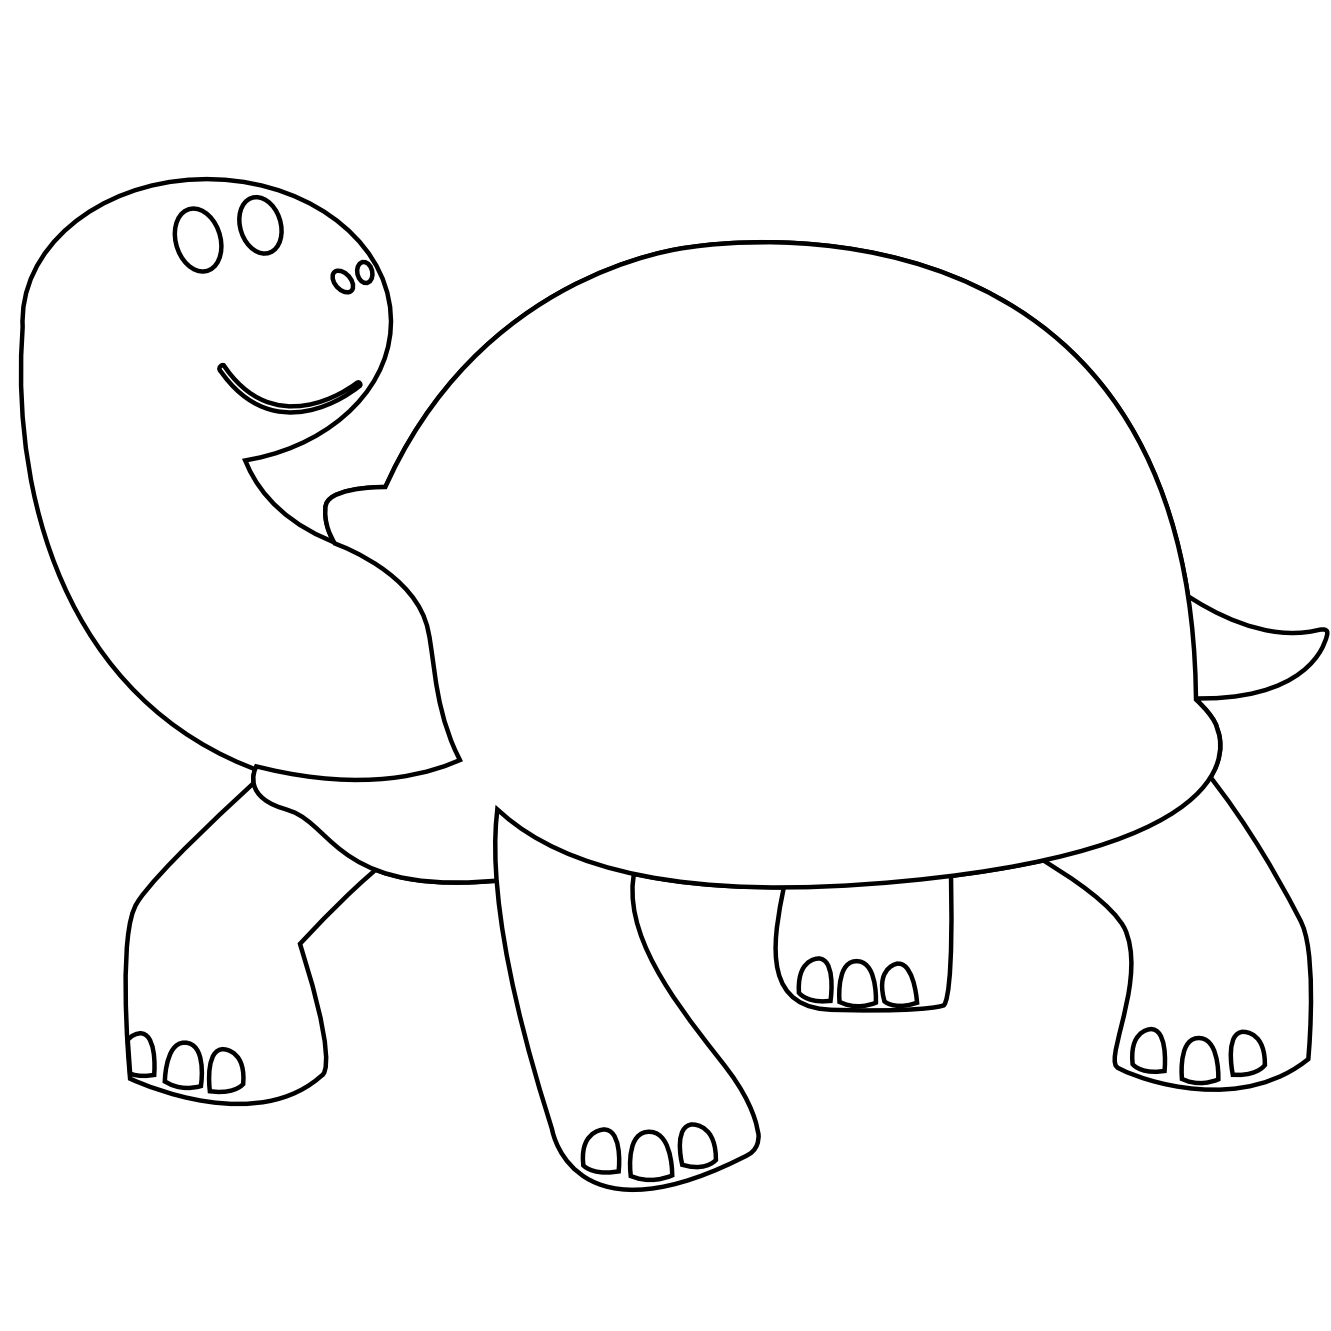 Line Art Of Animals : Line drawing of animals clipart best